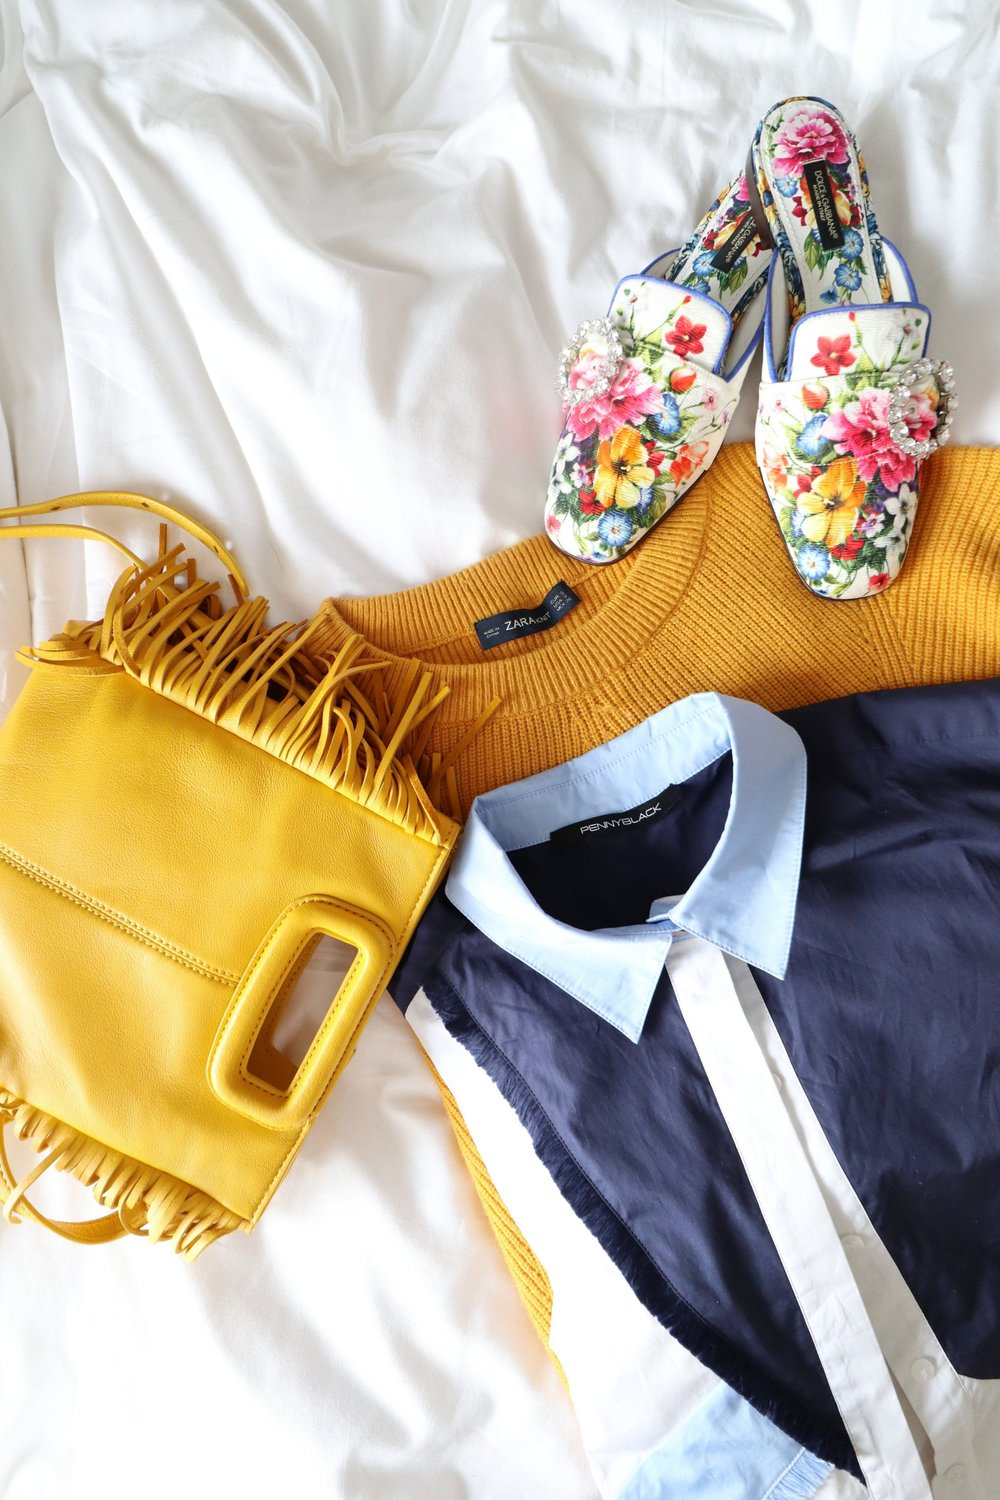 Maje lambskin M bag (yellow)  ($2400) /  Zara diagonal knit sweater (mustard)  ($300) /   Pennyblack Colour block shirt with fringe  ($1800) /  DOLCE & GABBANA Jackie Majolica-print slides  ($4400)